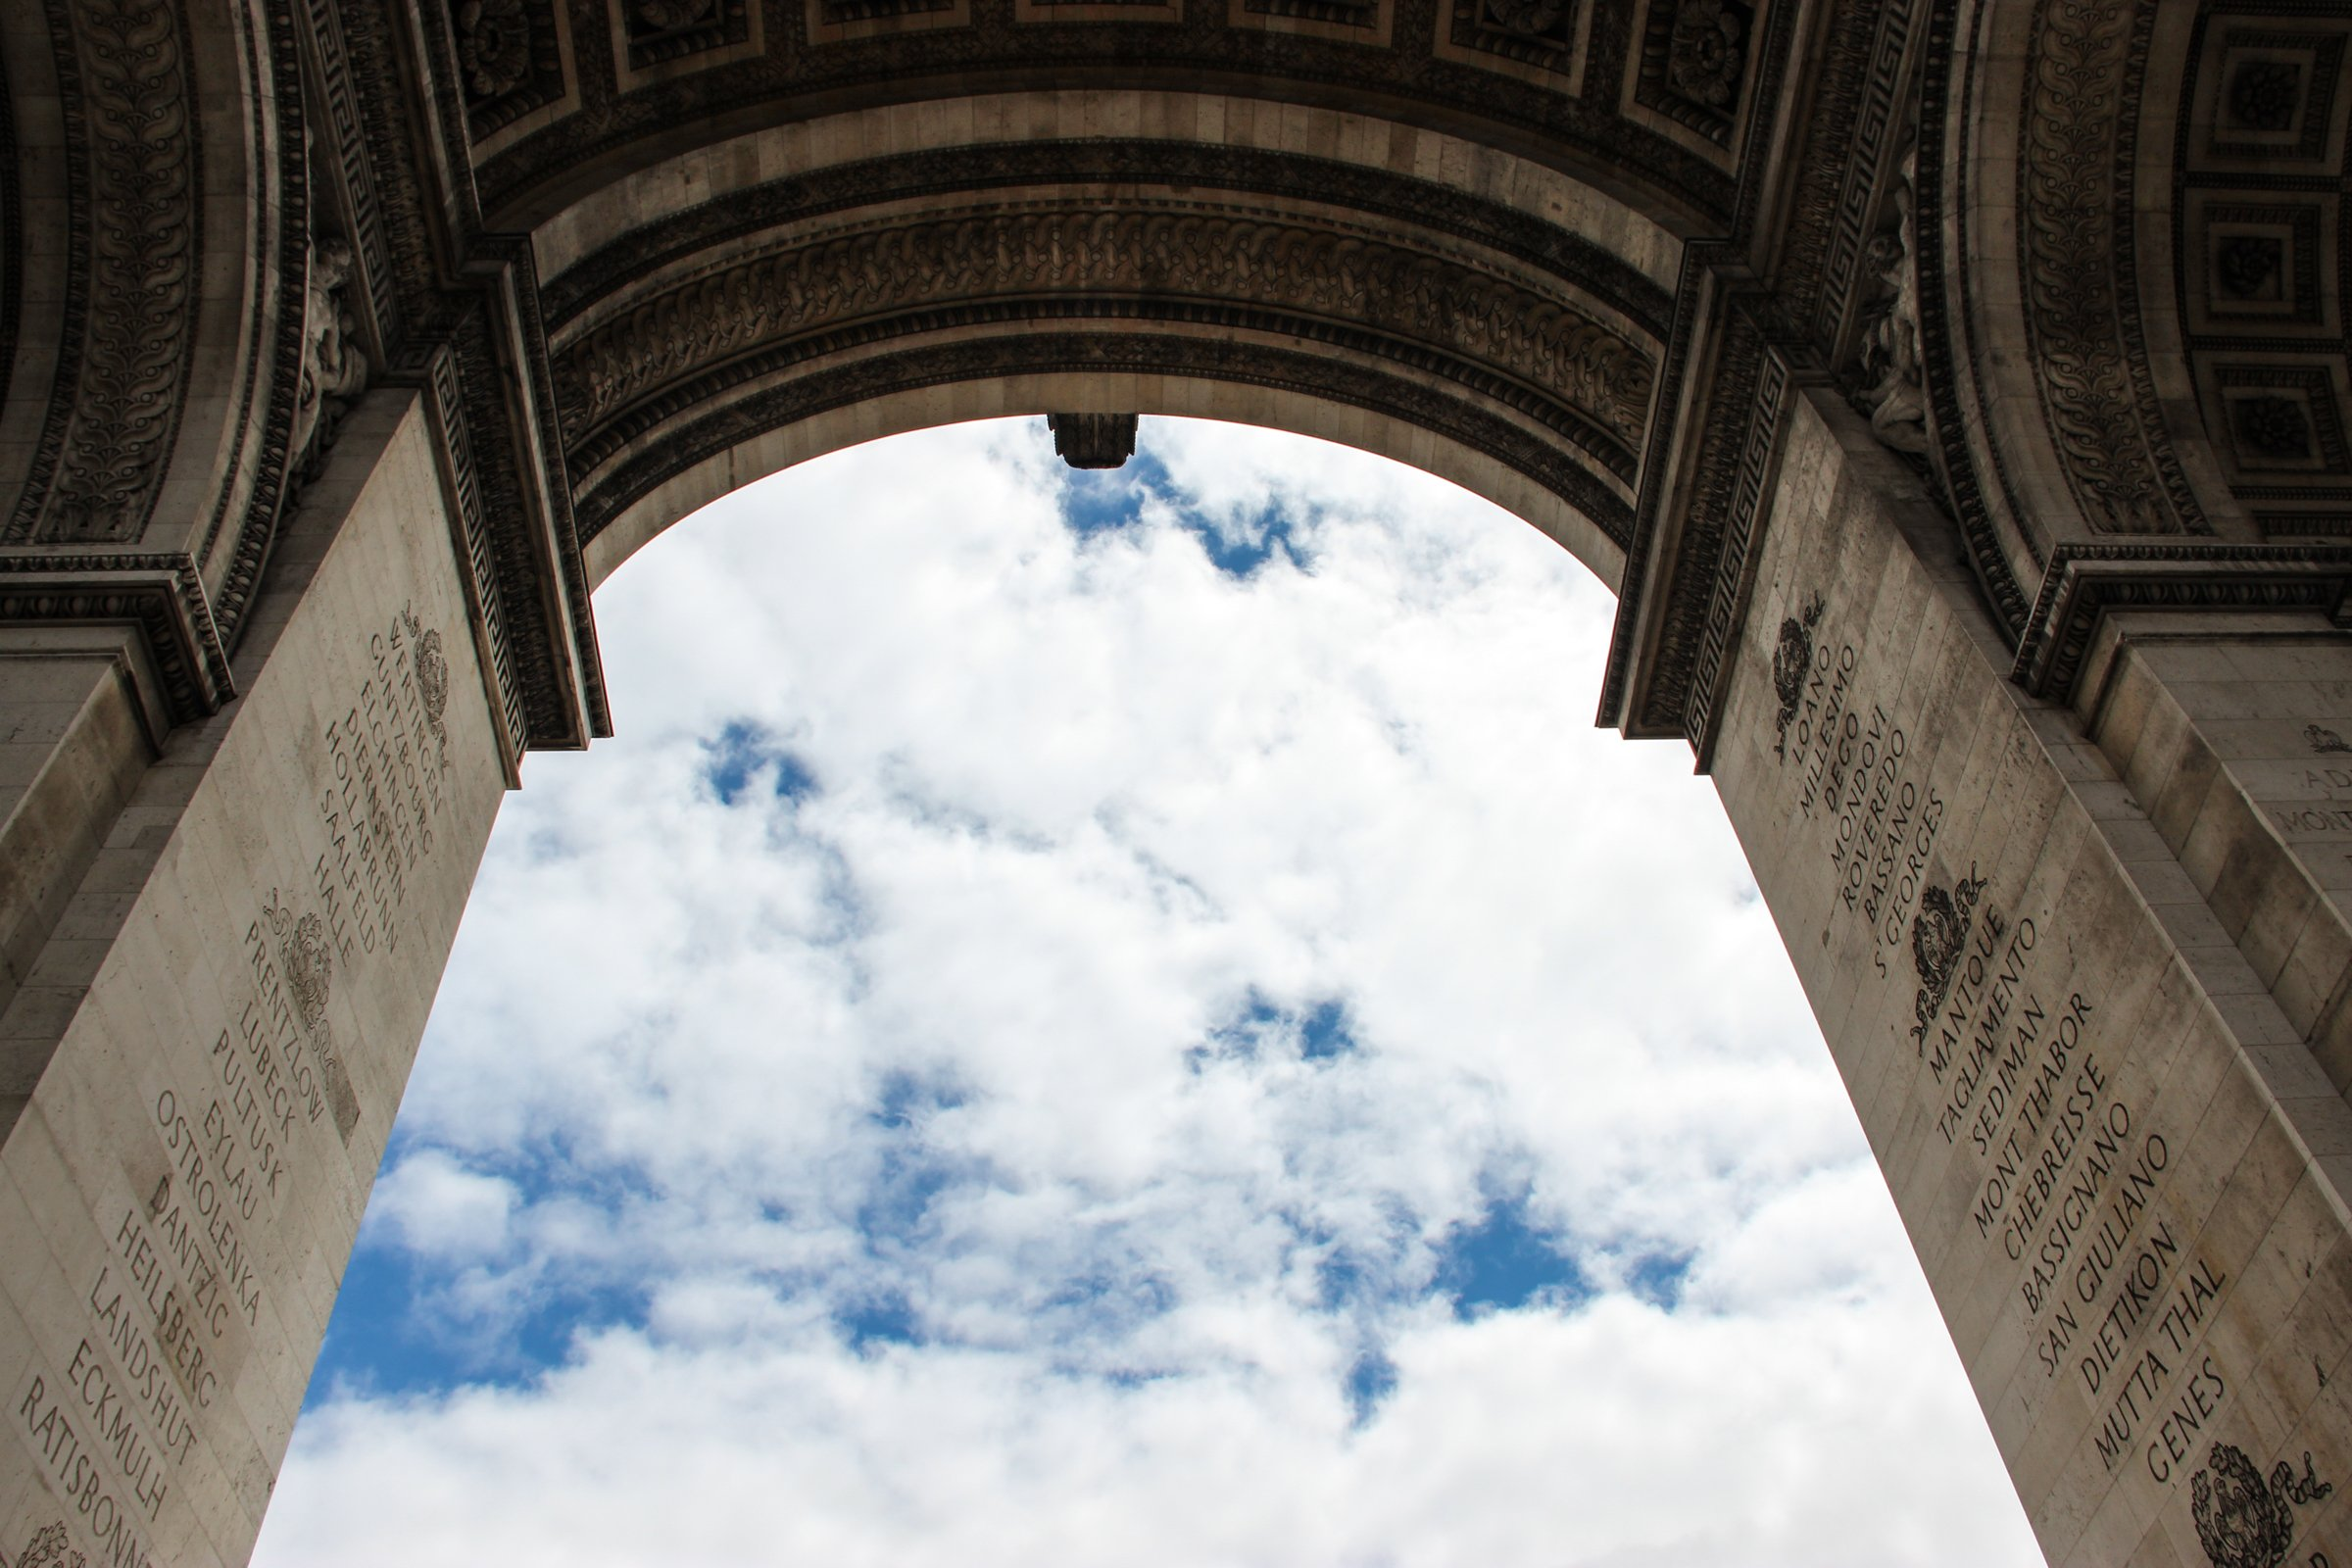 Building Archway Under Clouds